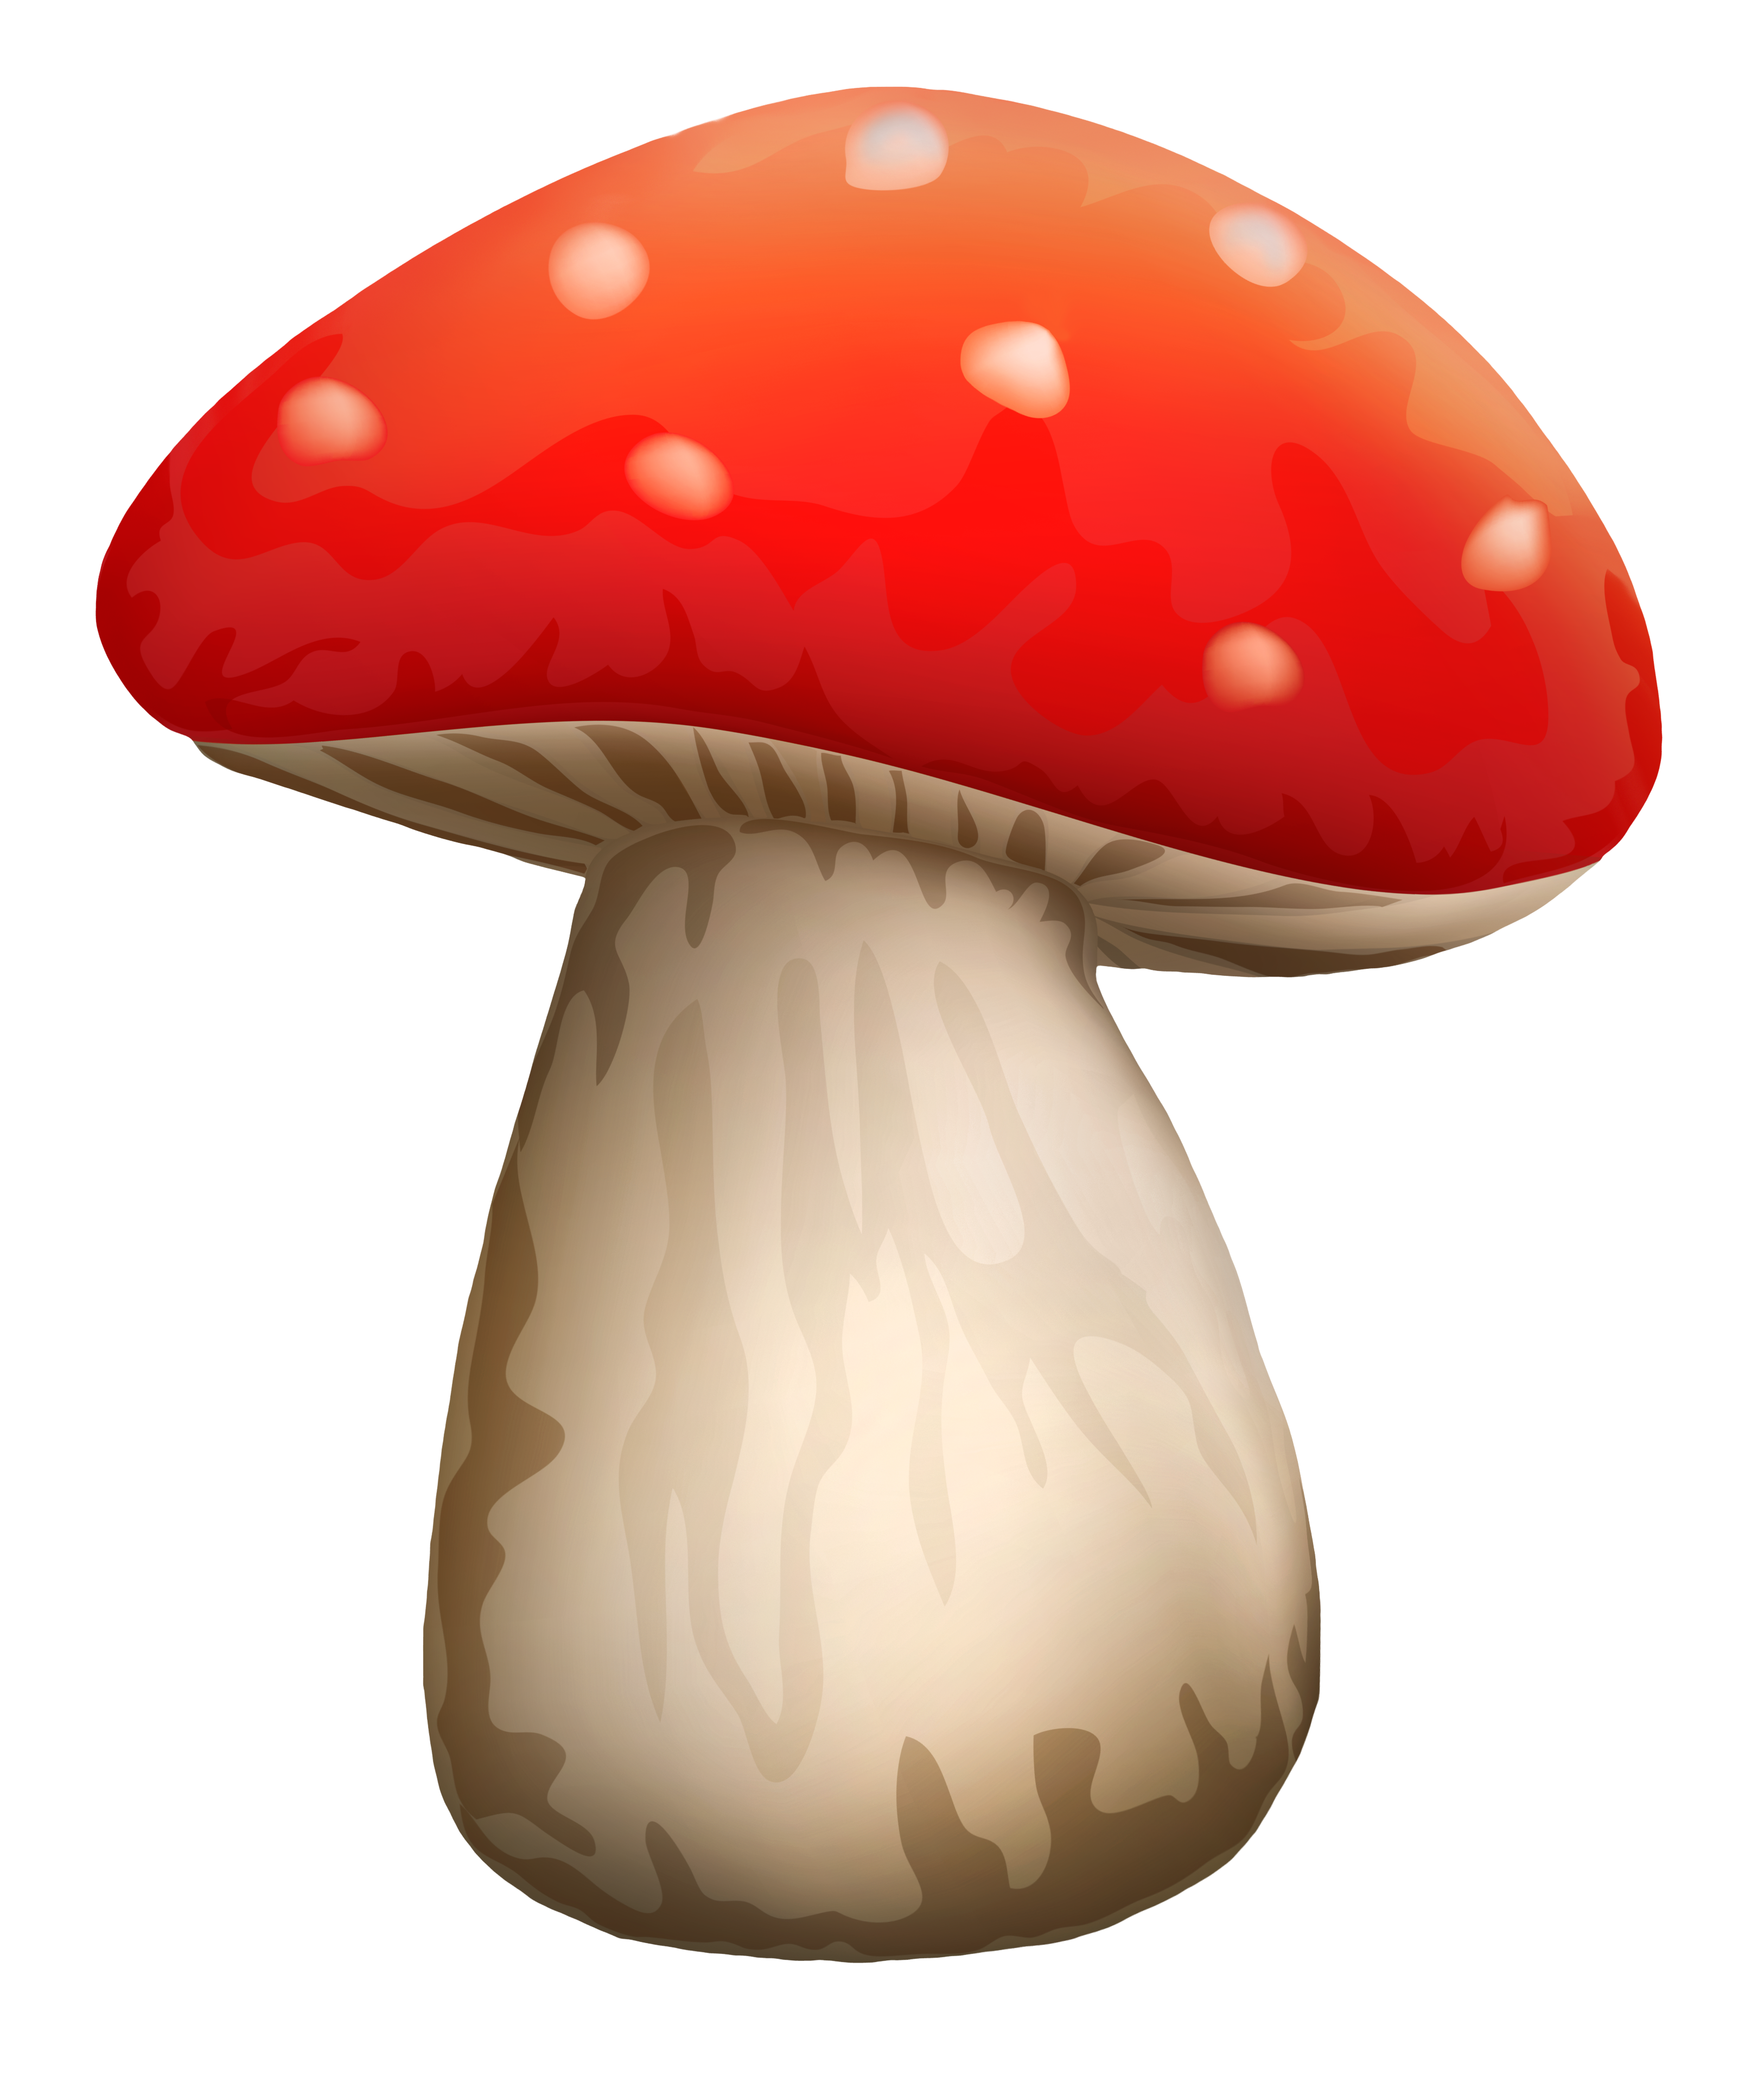 Red mushroom png. Poisonous with white dots